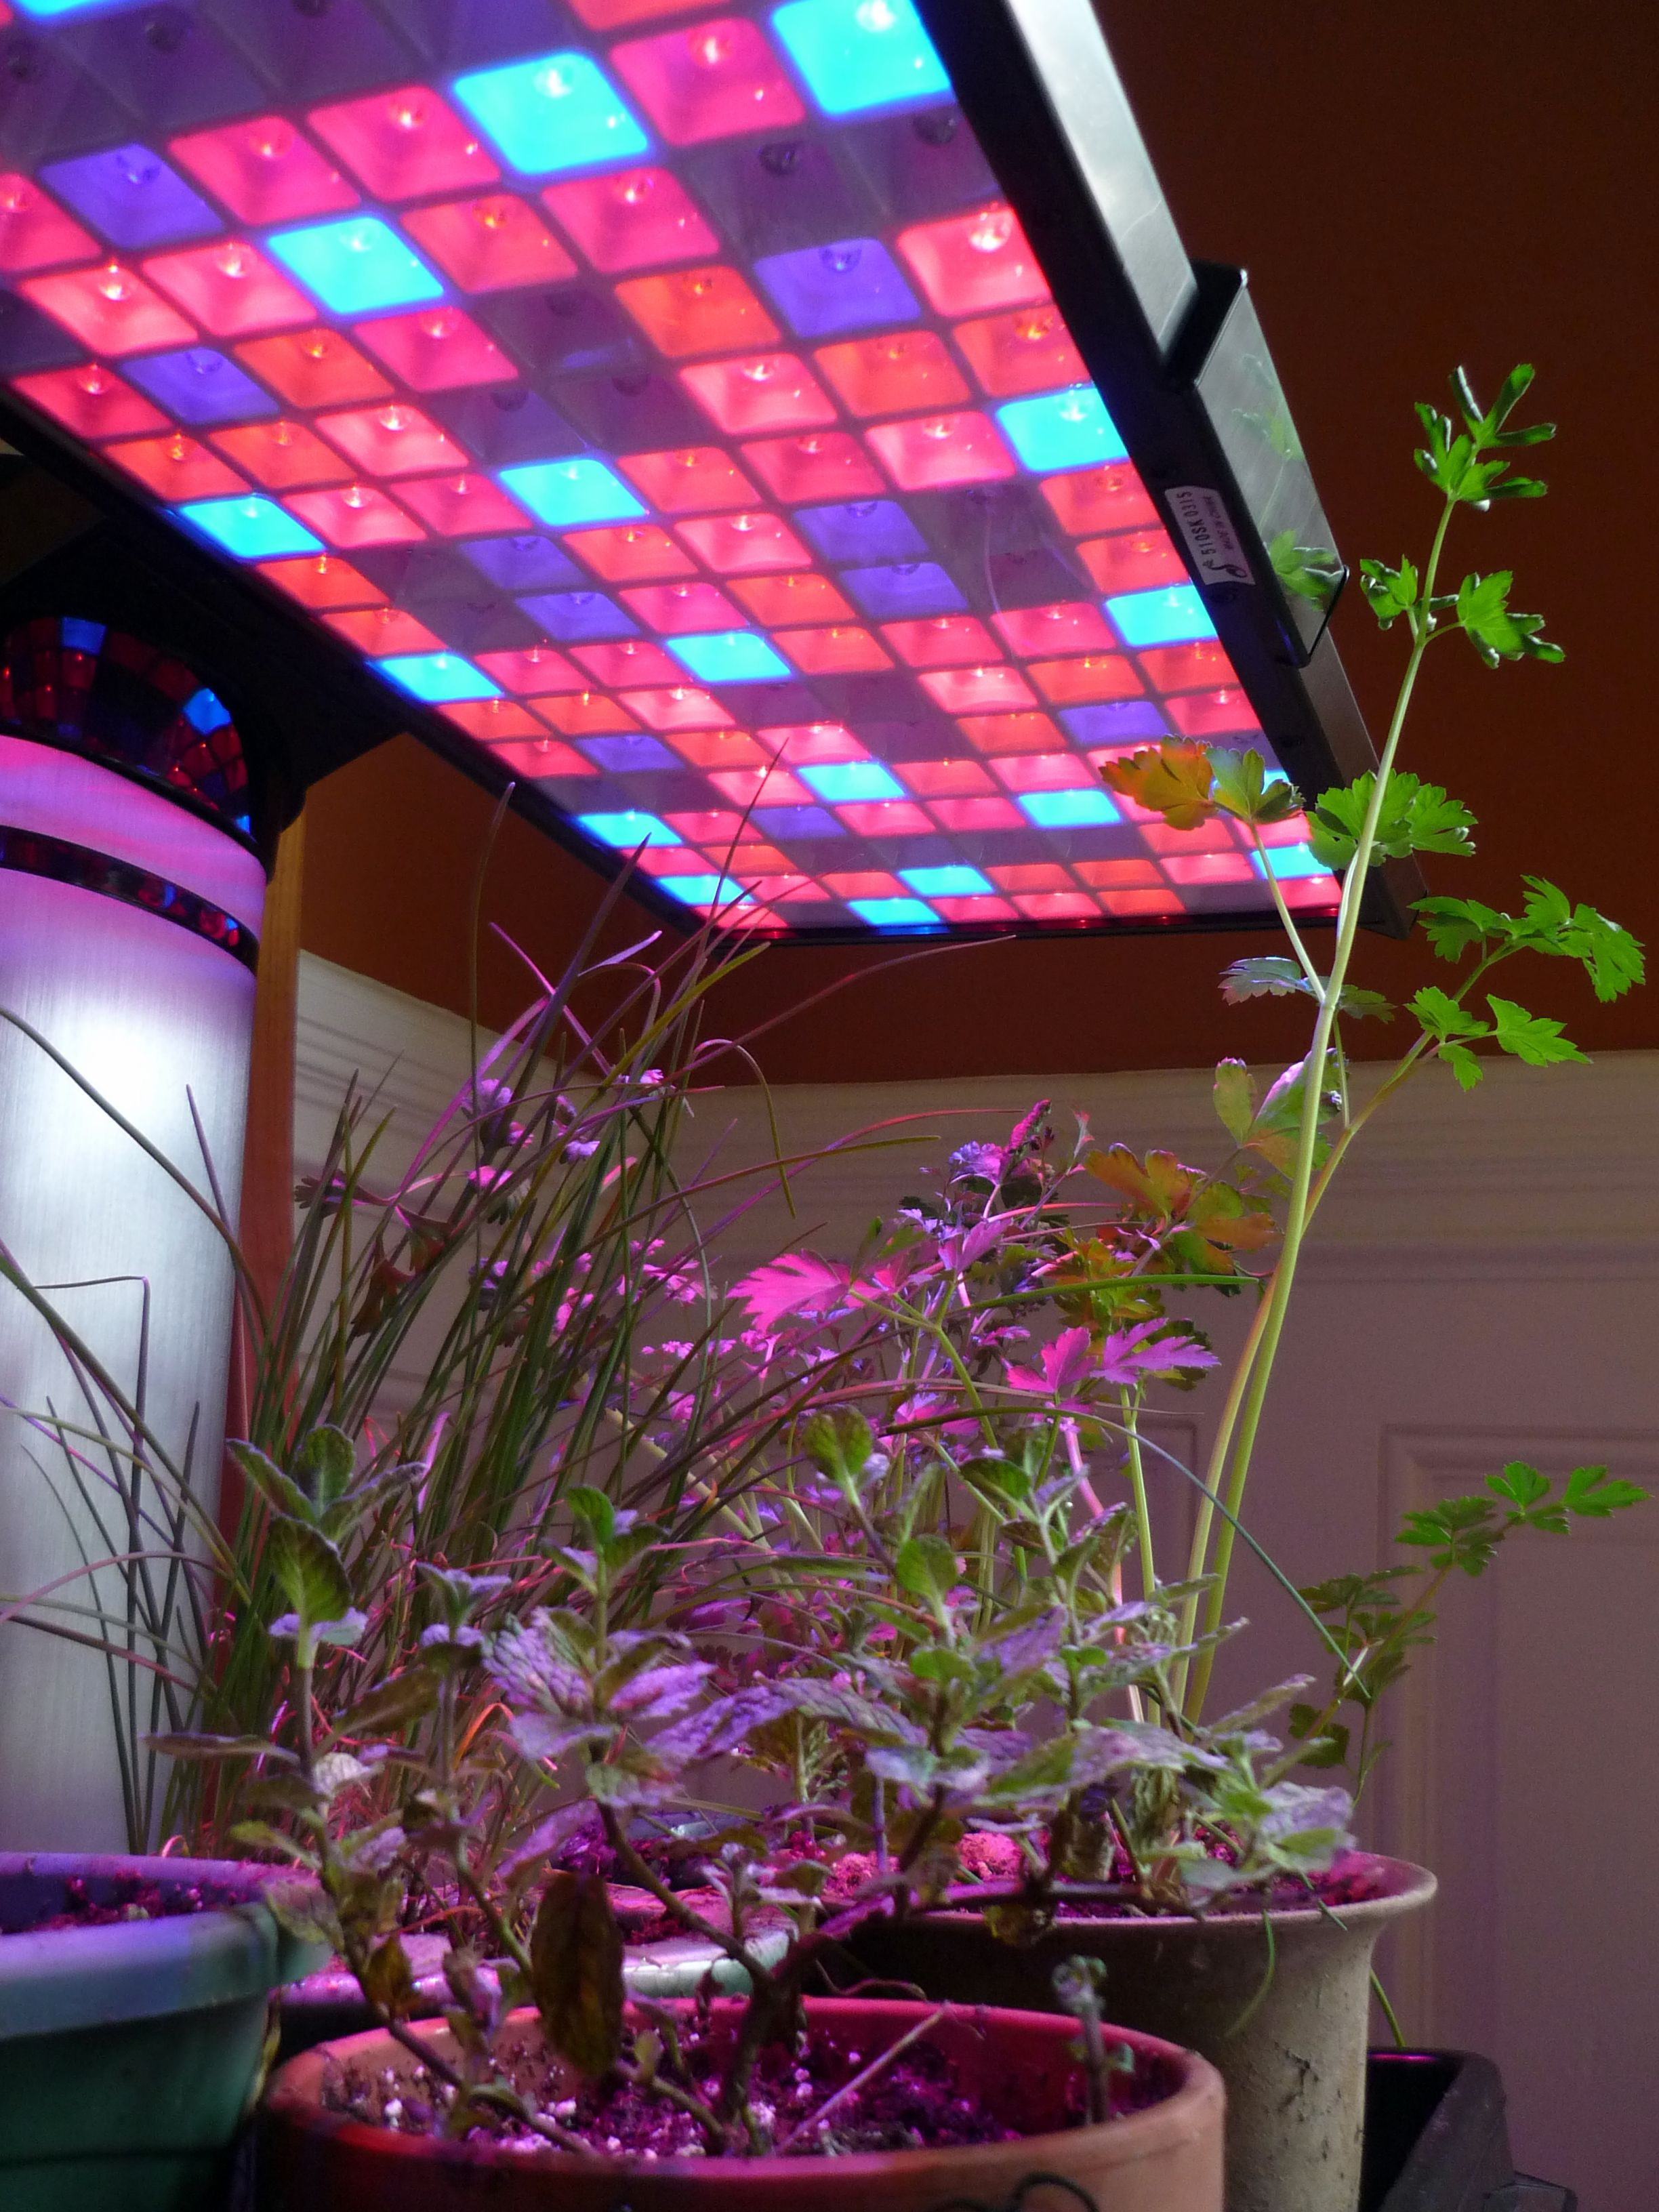 horticultural light for lights in led netherlands a rapidly young now plants greenhouse sector the growing grow